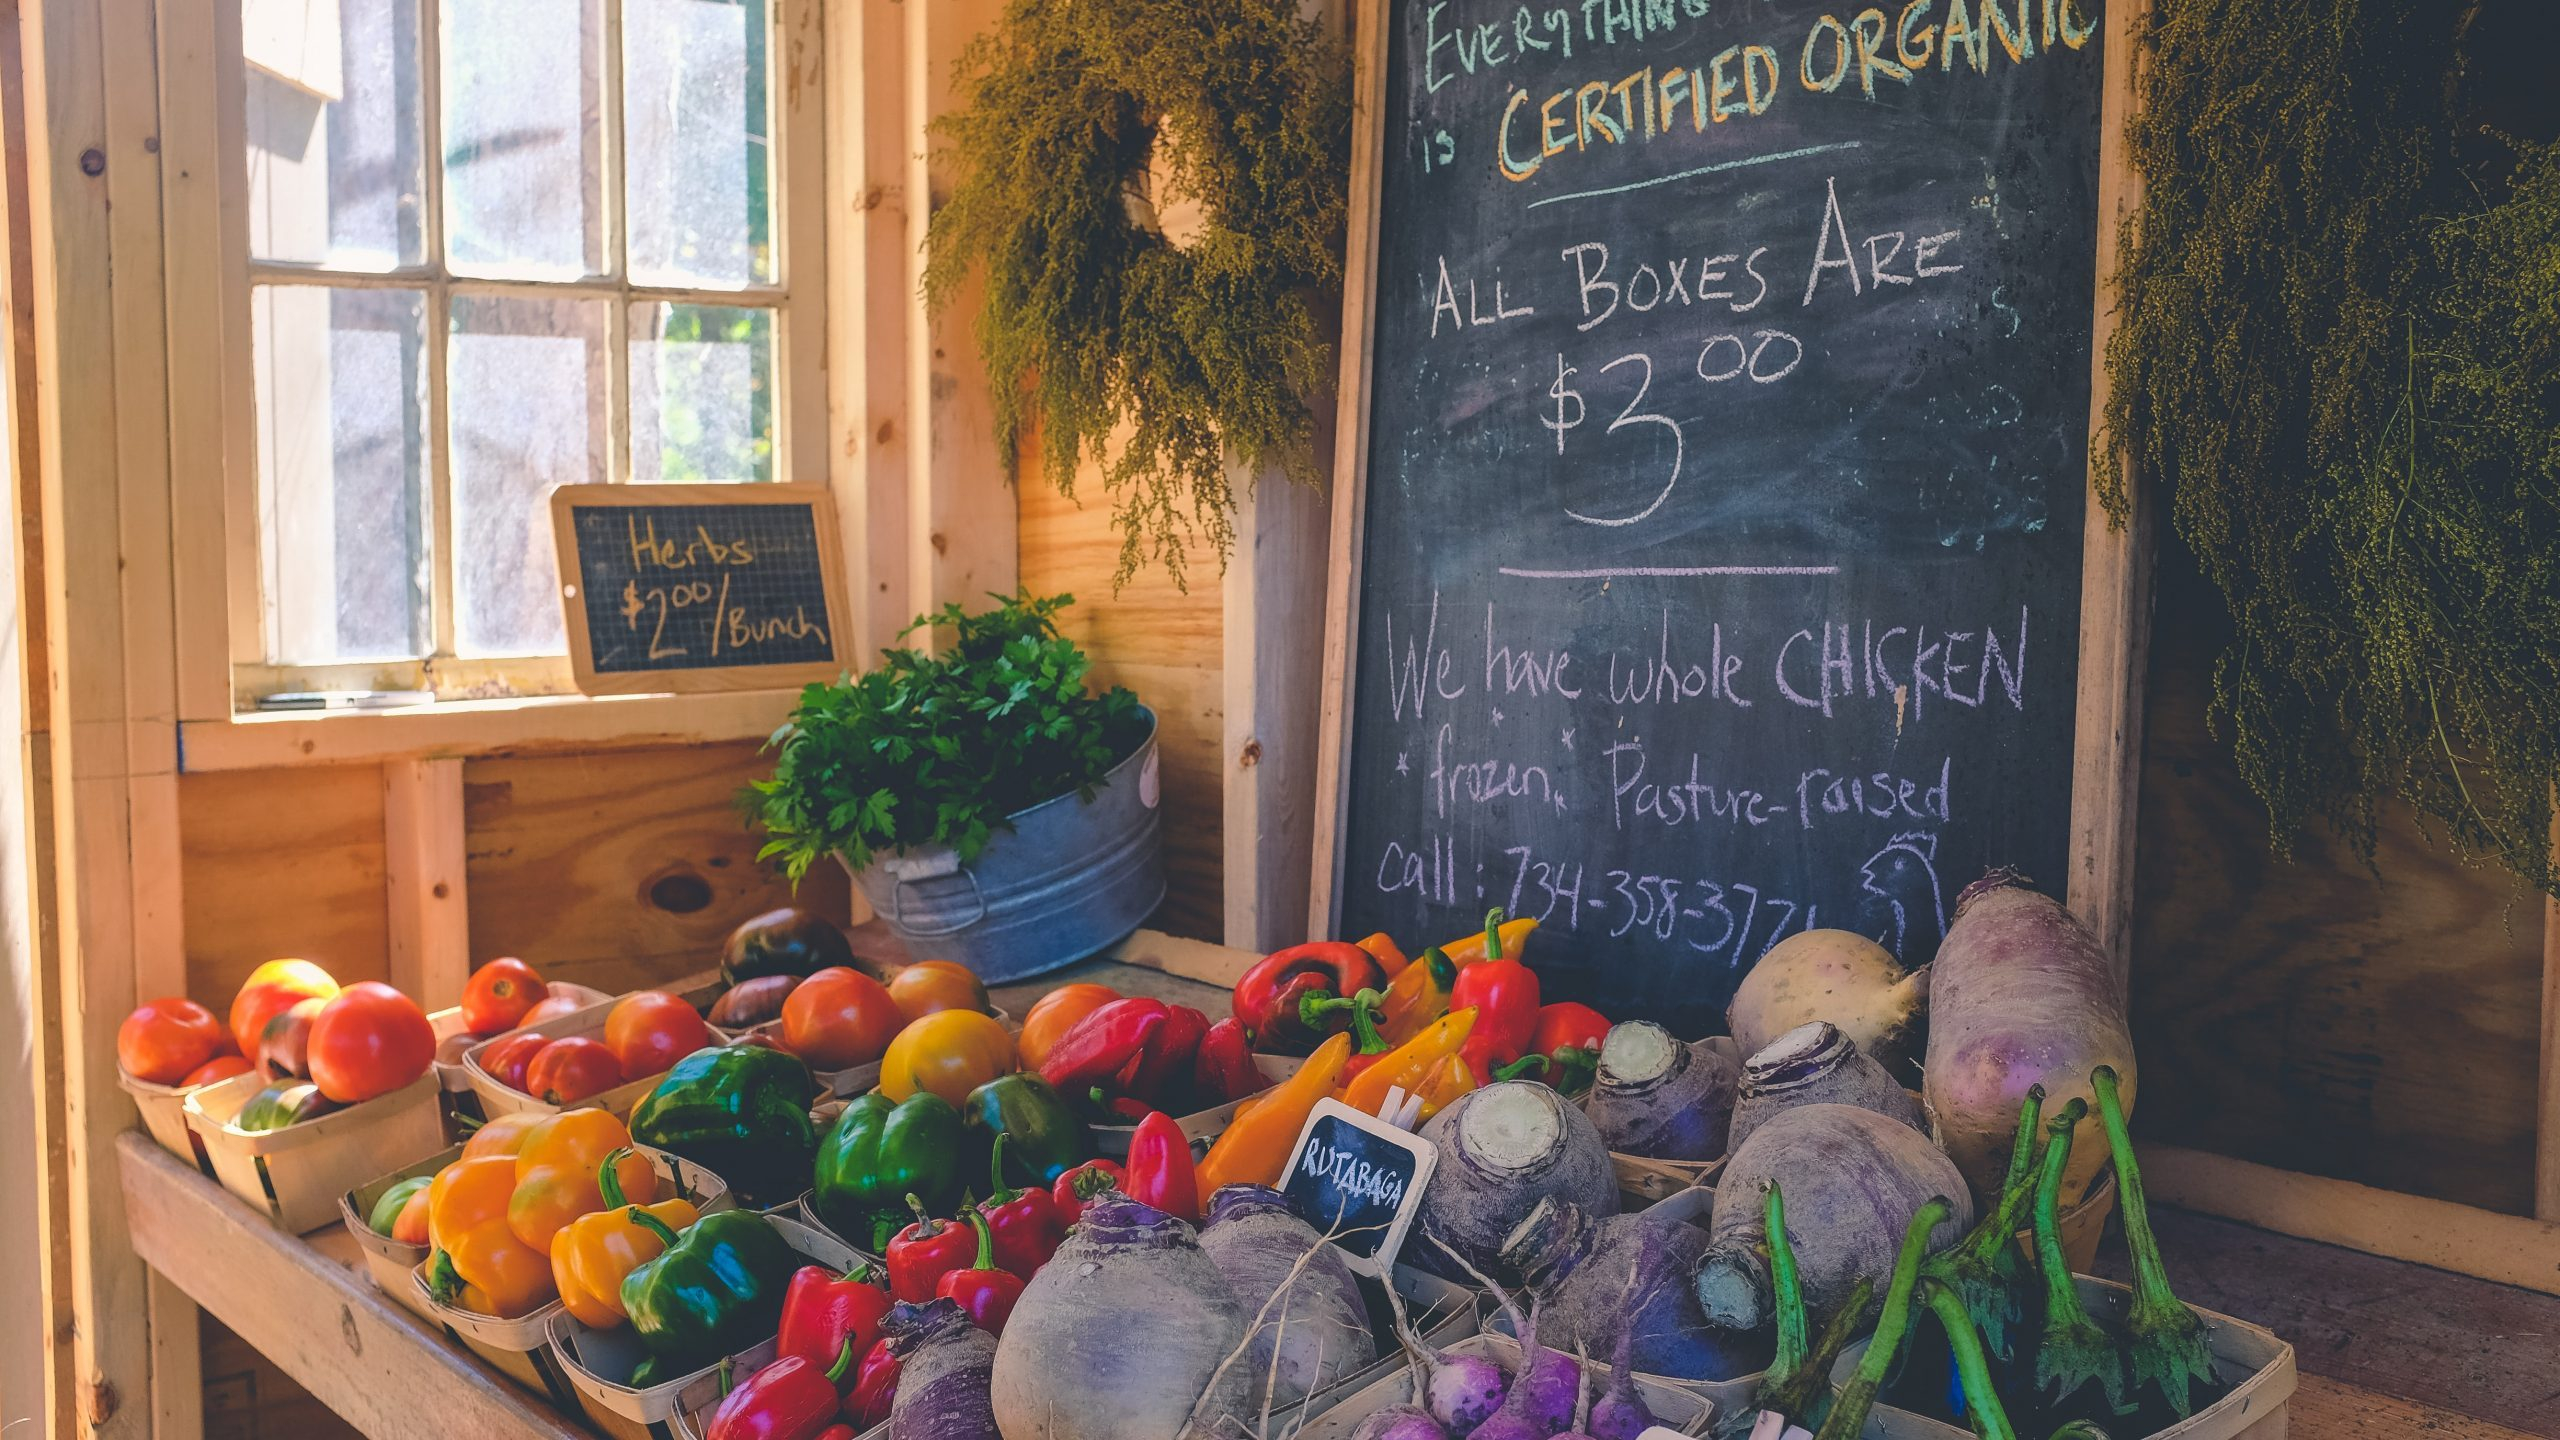 The value of organic food